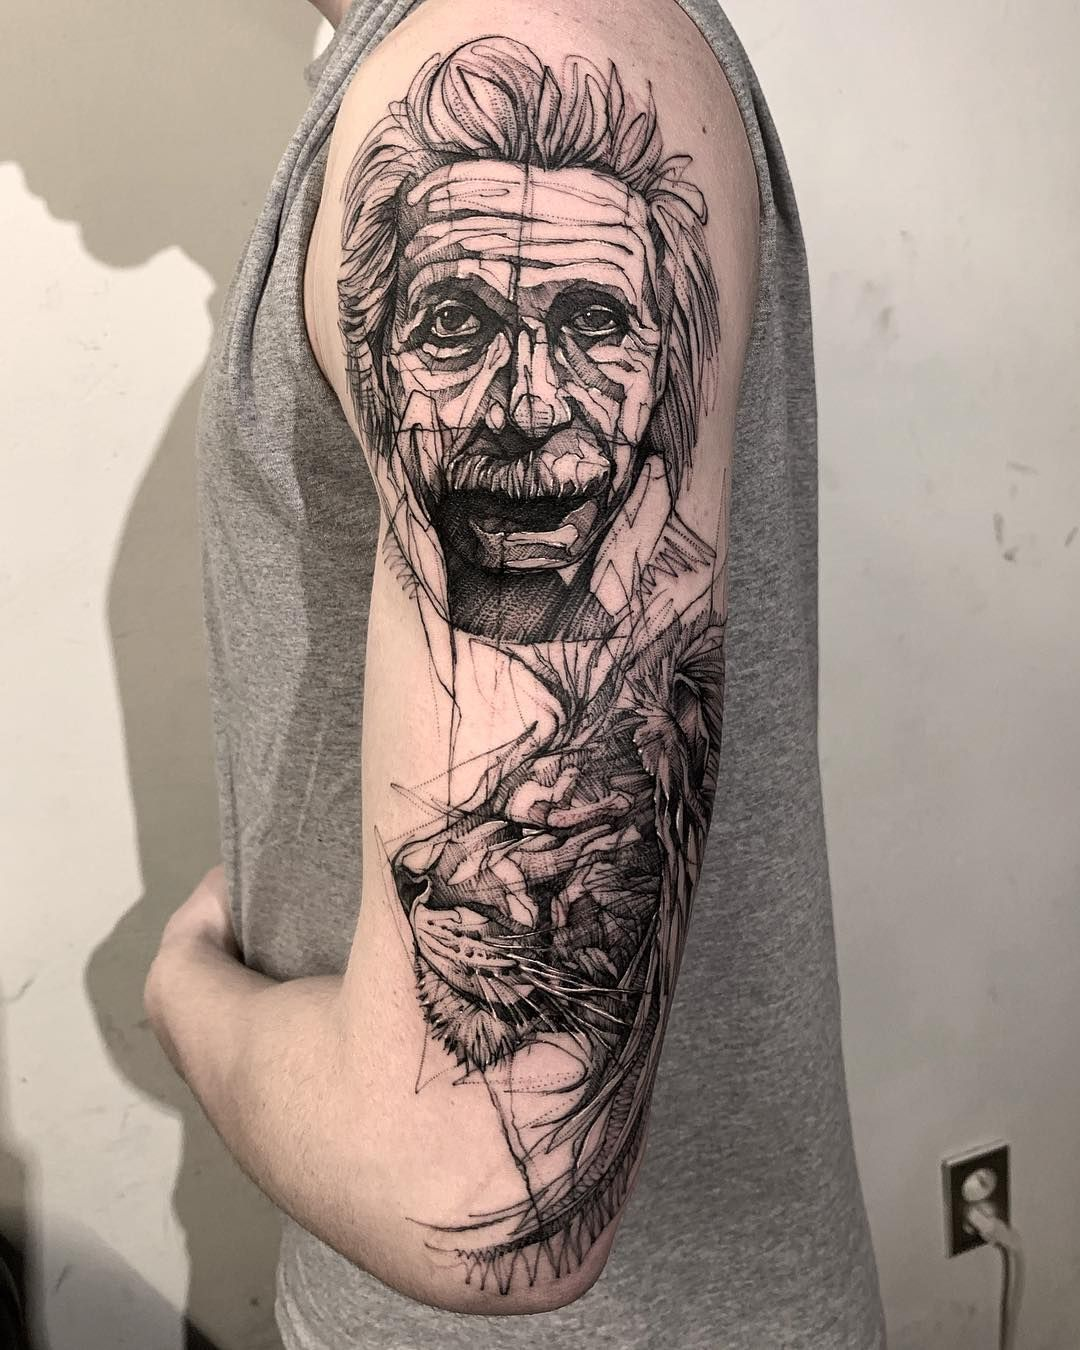 Image May Contain One Or More People Tattoos Portrait Tattoo